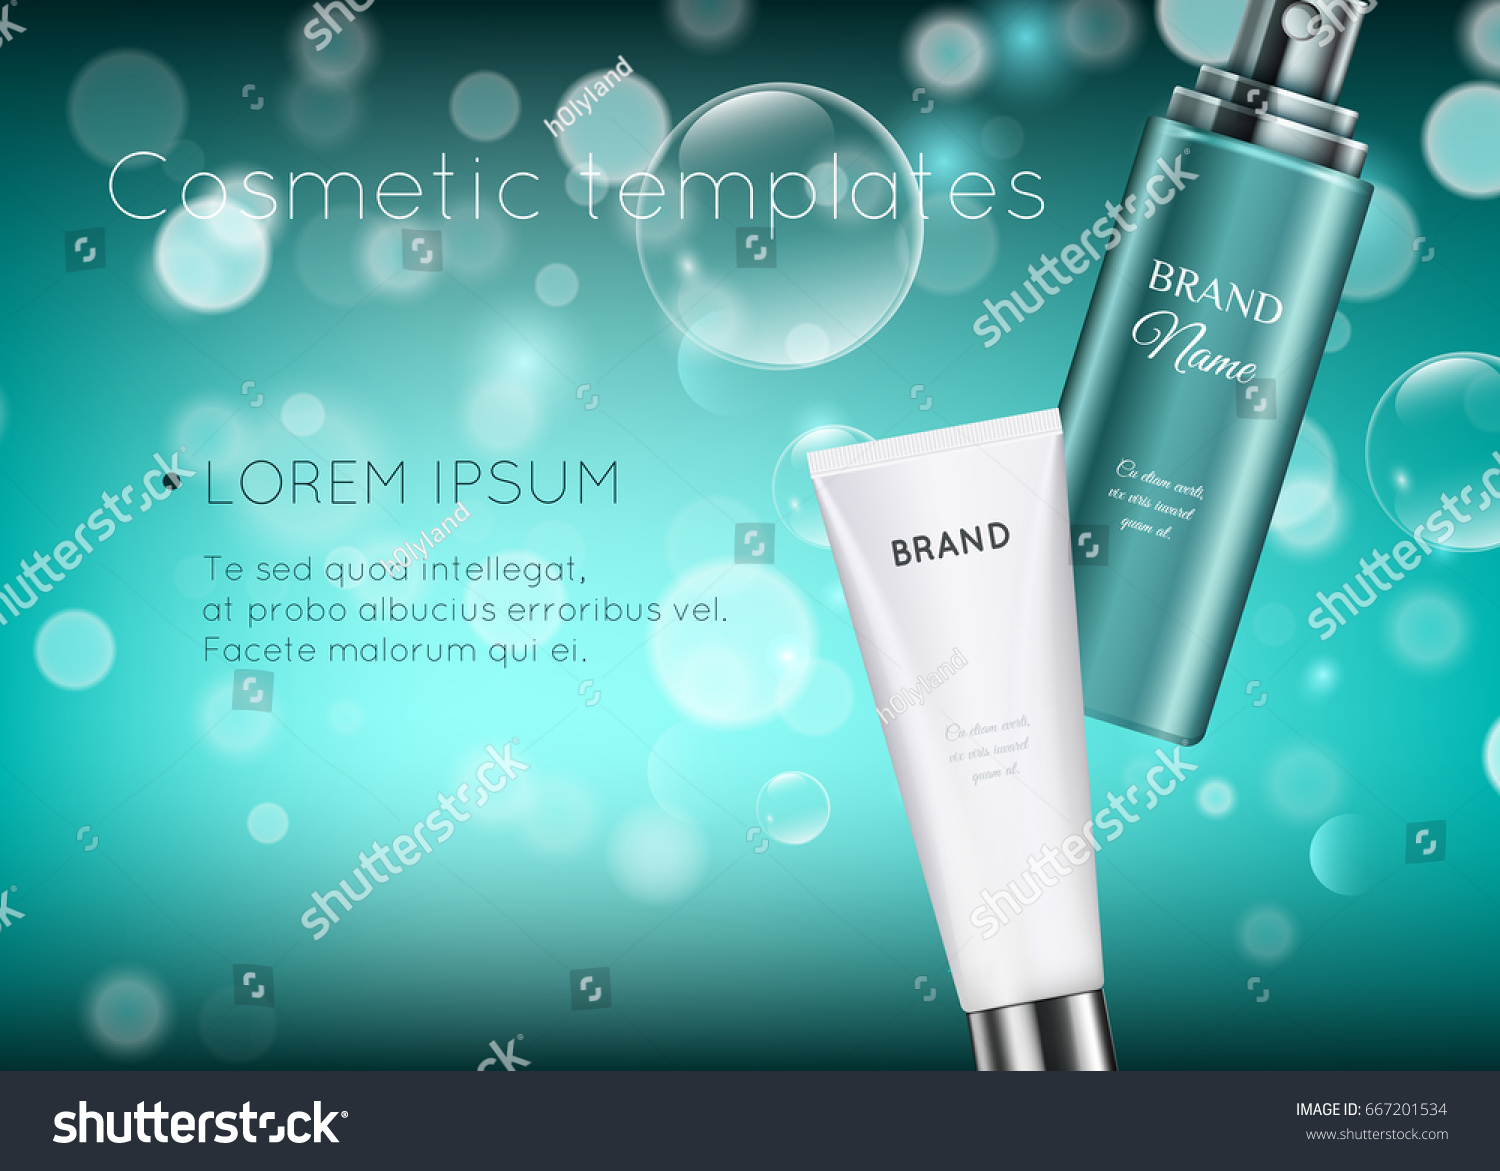 beautiful cosmetic templates ads realistic 3d stock vector